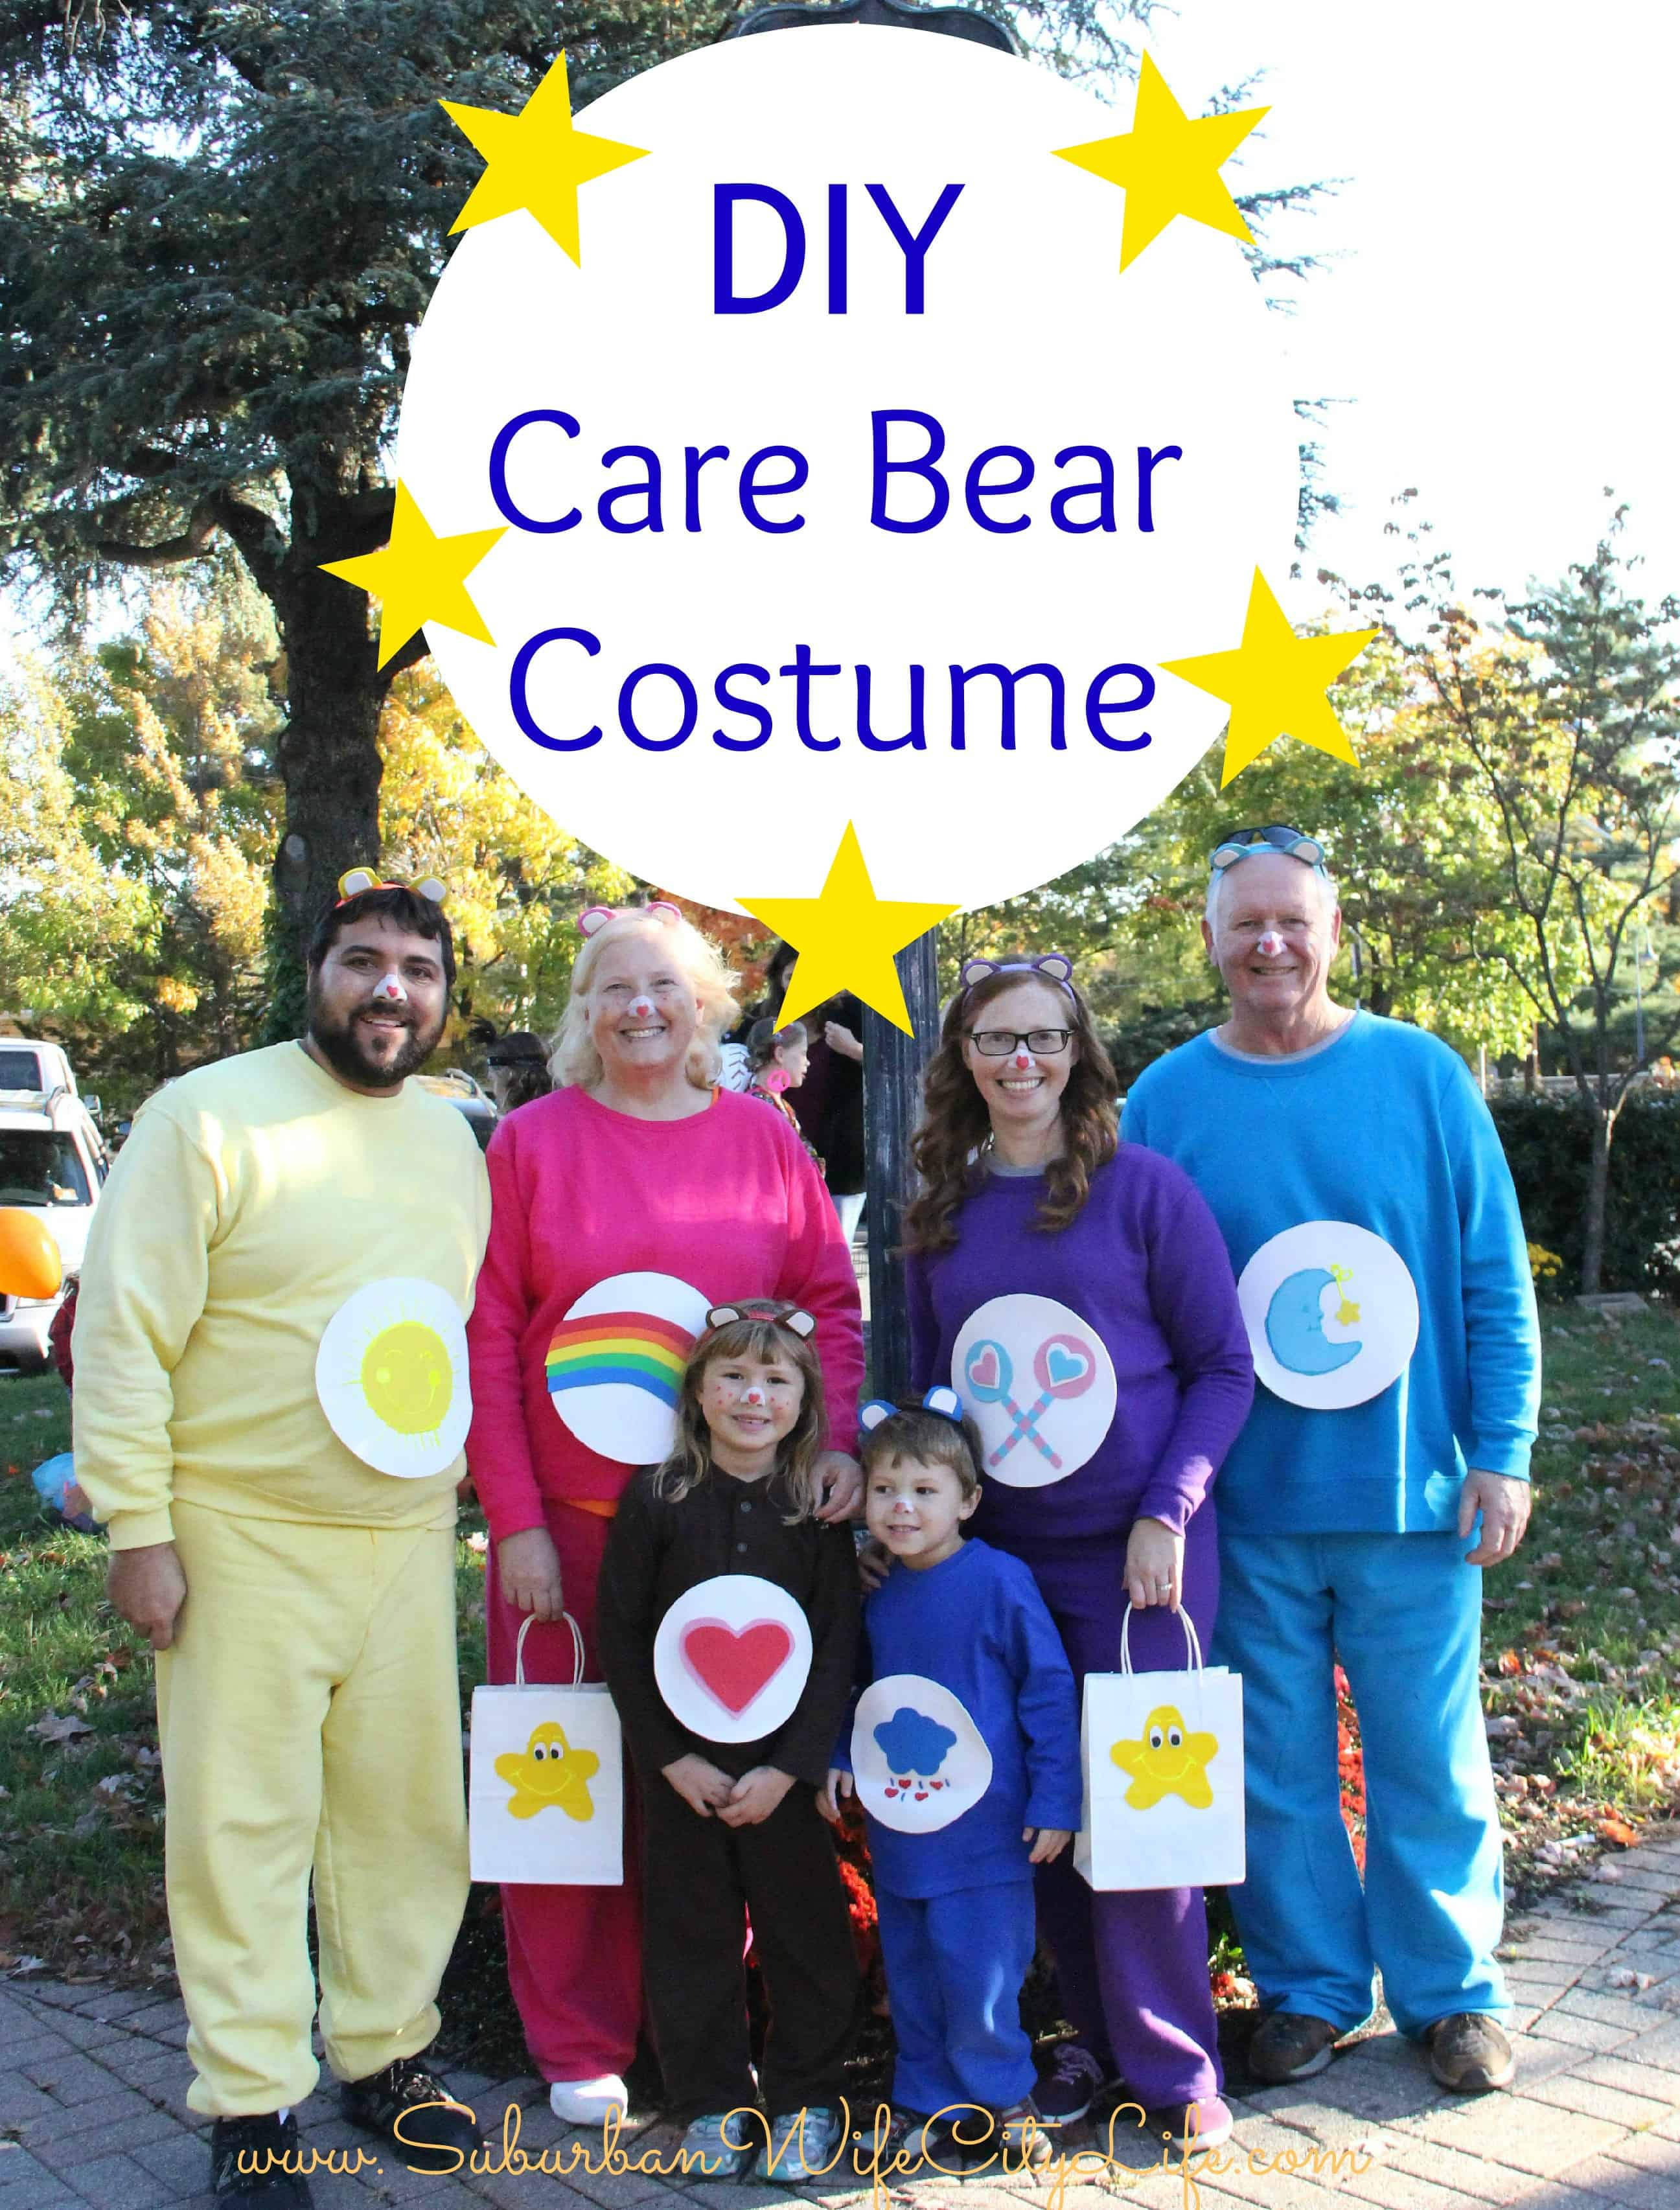 DIY Care Bear Costume